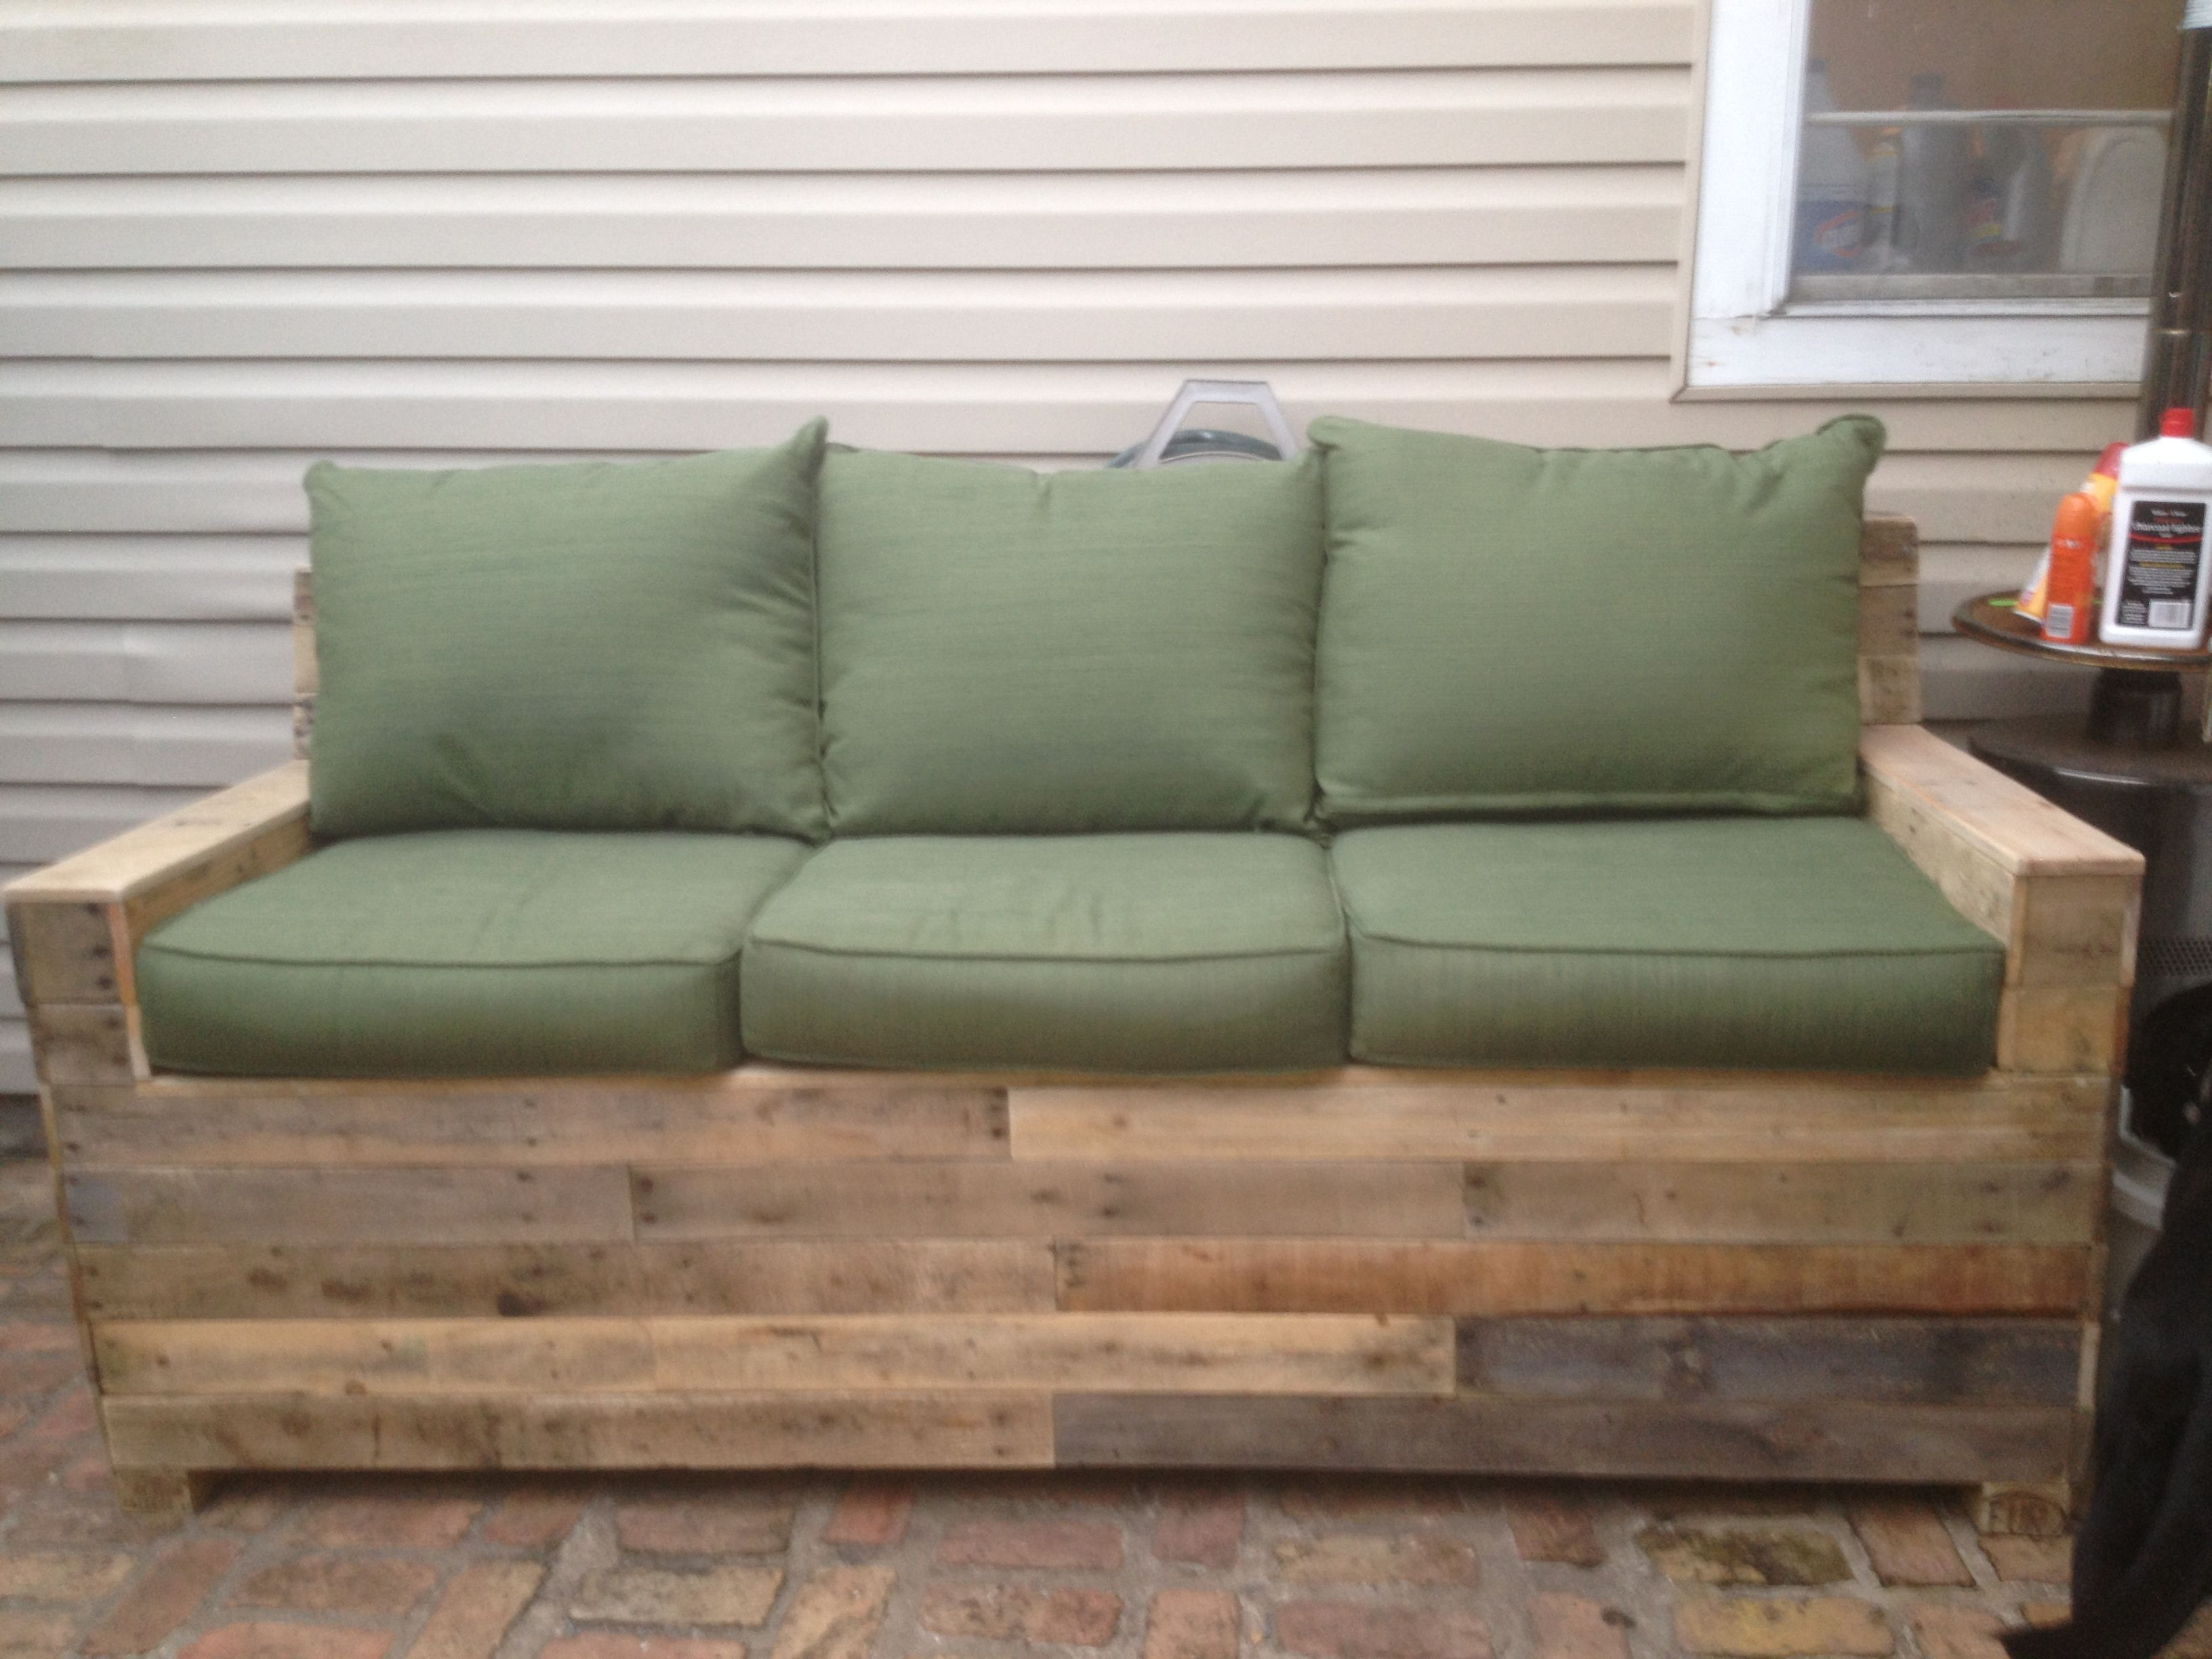 sunbrella sofa cushions grey 3 seater dfs pallet sofa. for sale $600 | reclaimed wood furniture from ...